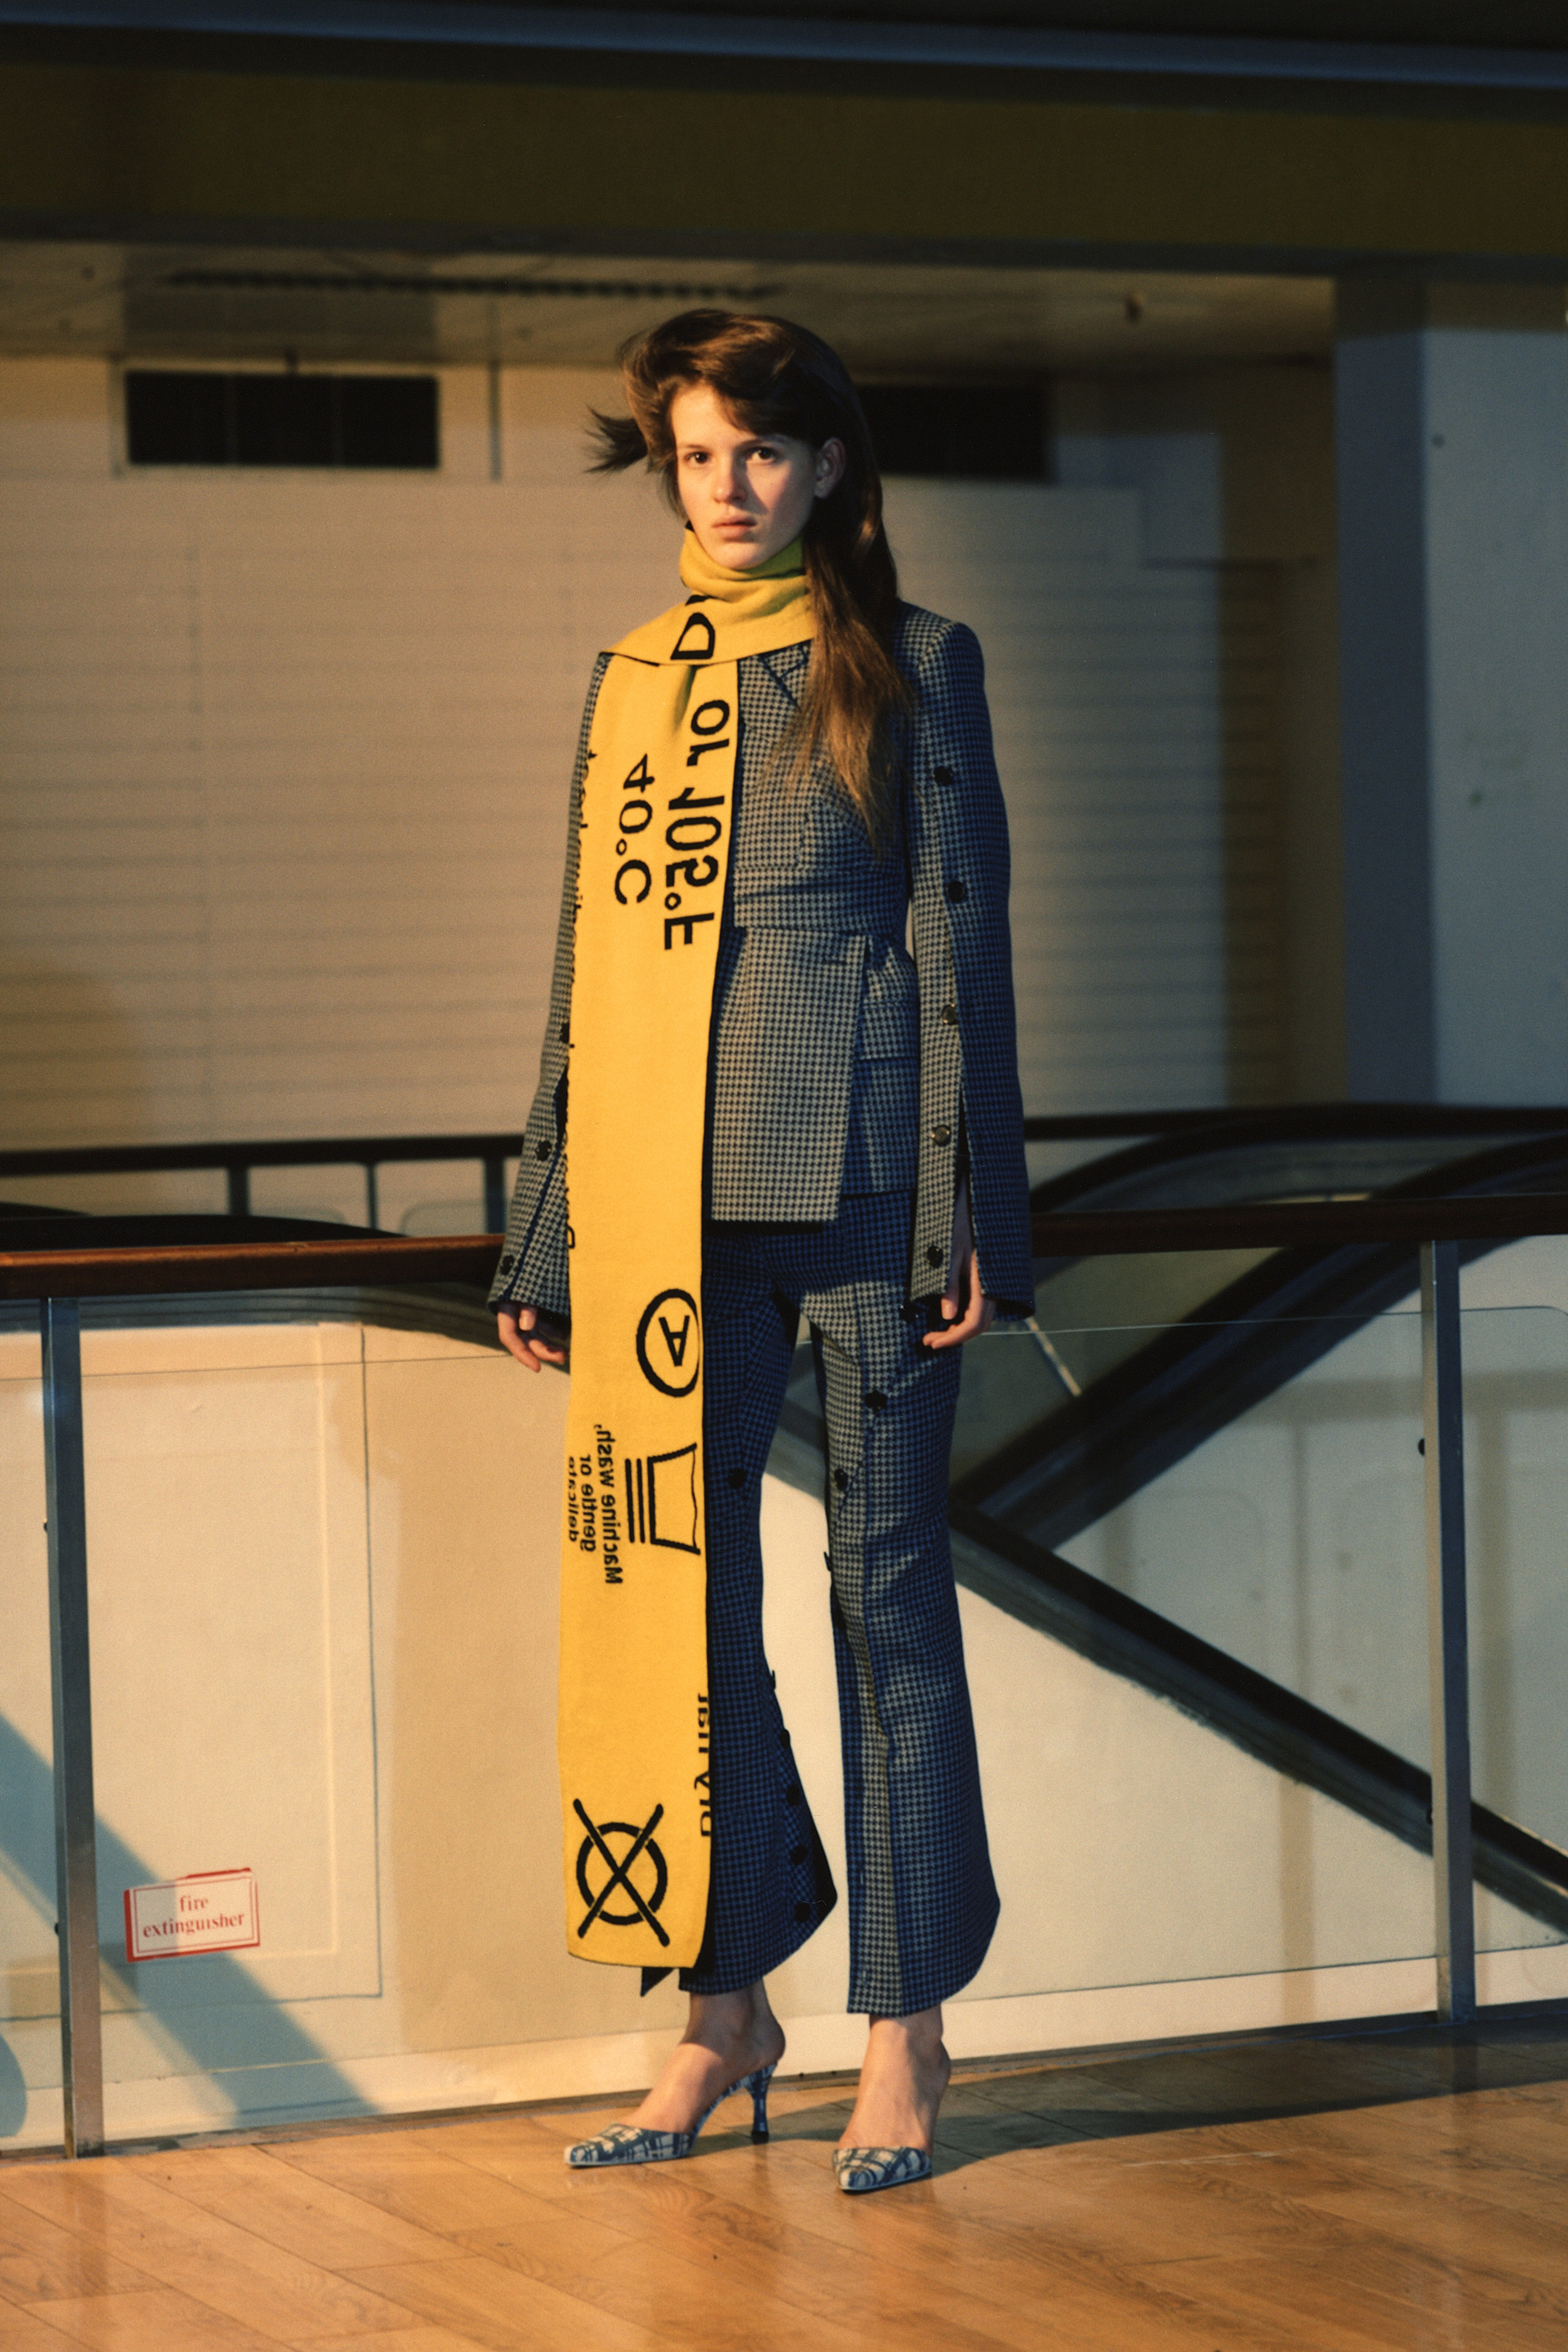 rokh_aw18_fashion_collection_magazine_vogue_10.jpg